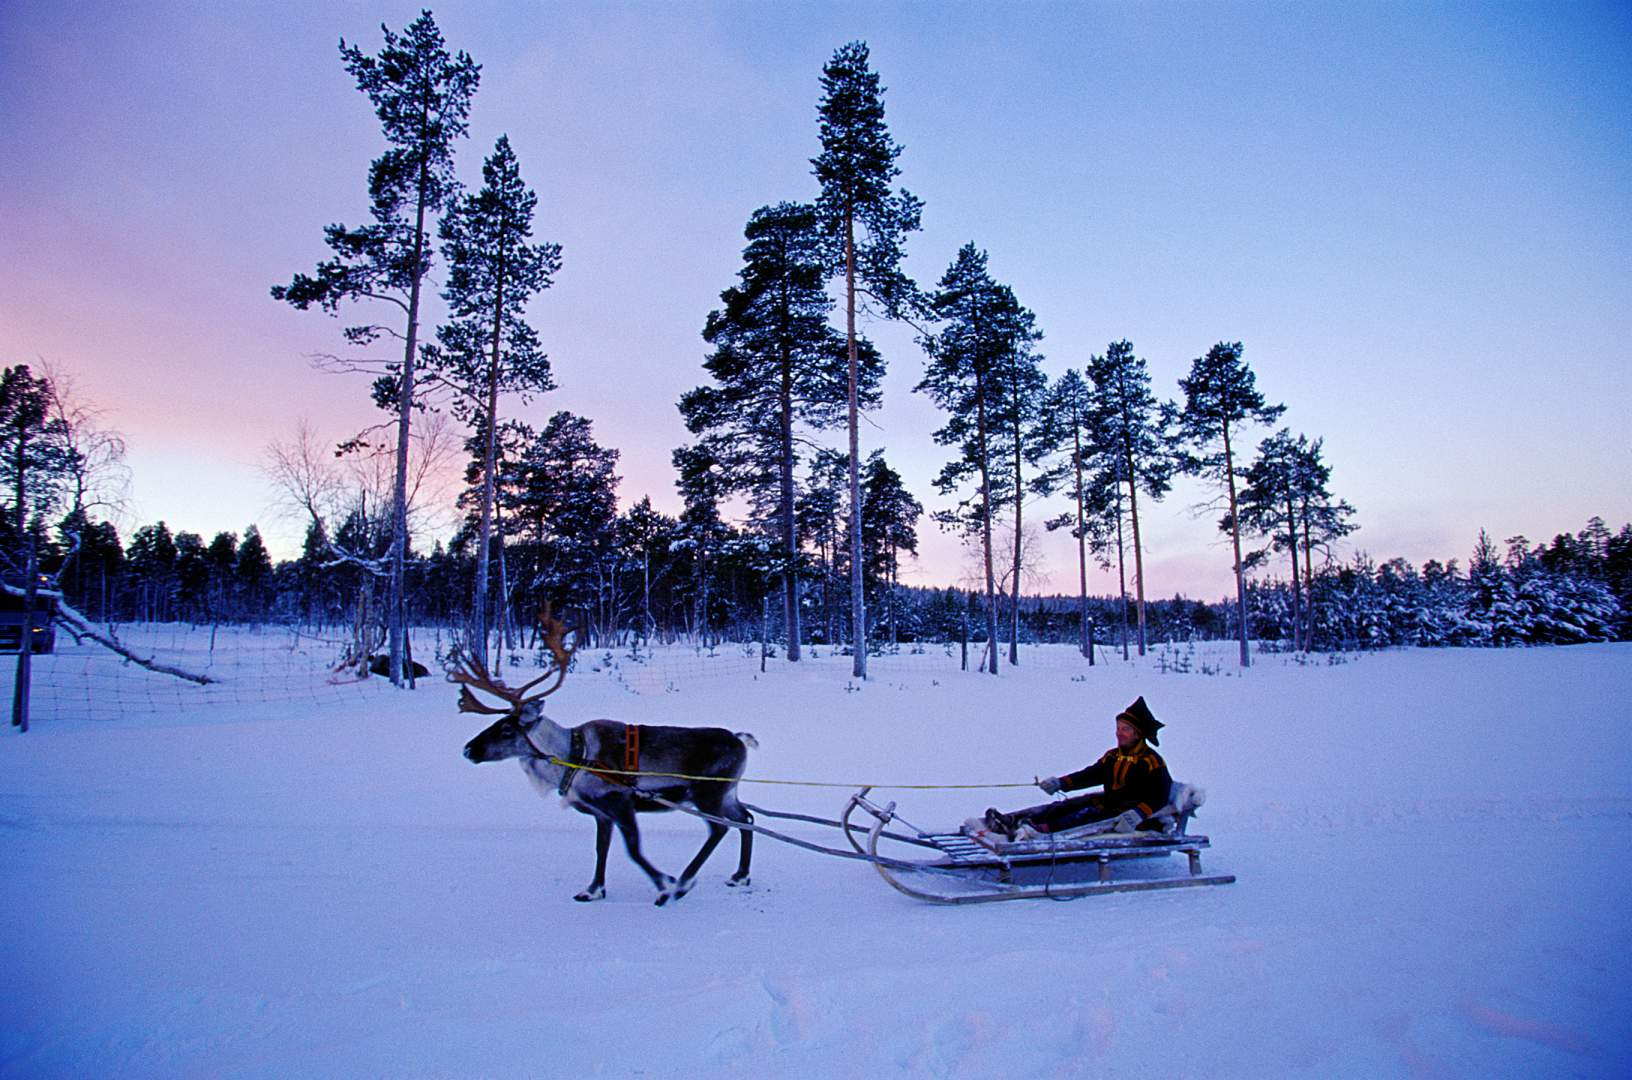 Finland sled with rain deer winter time